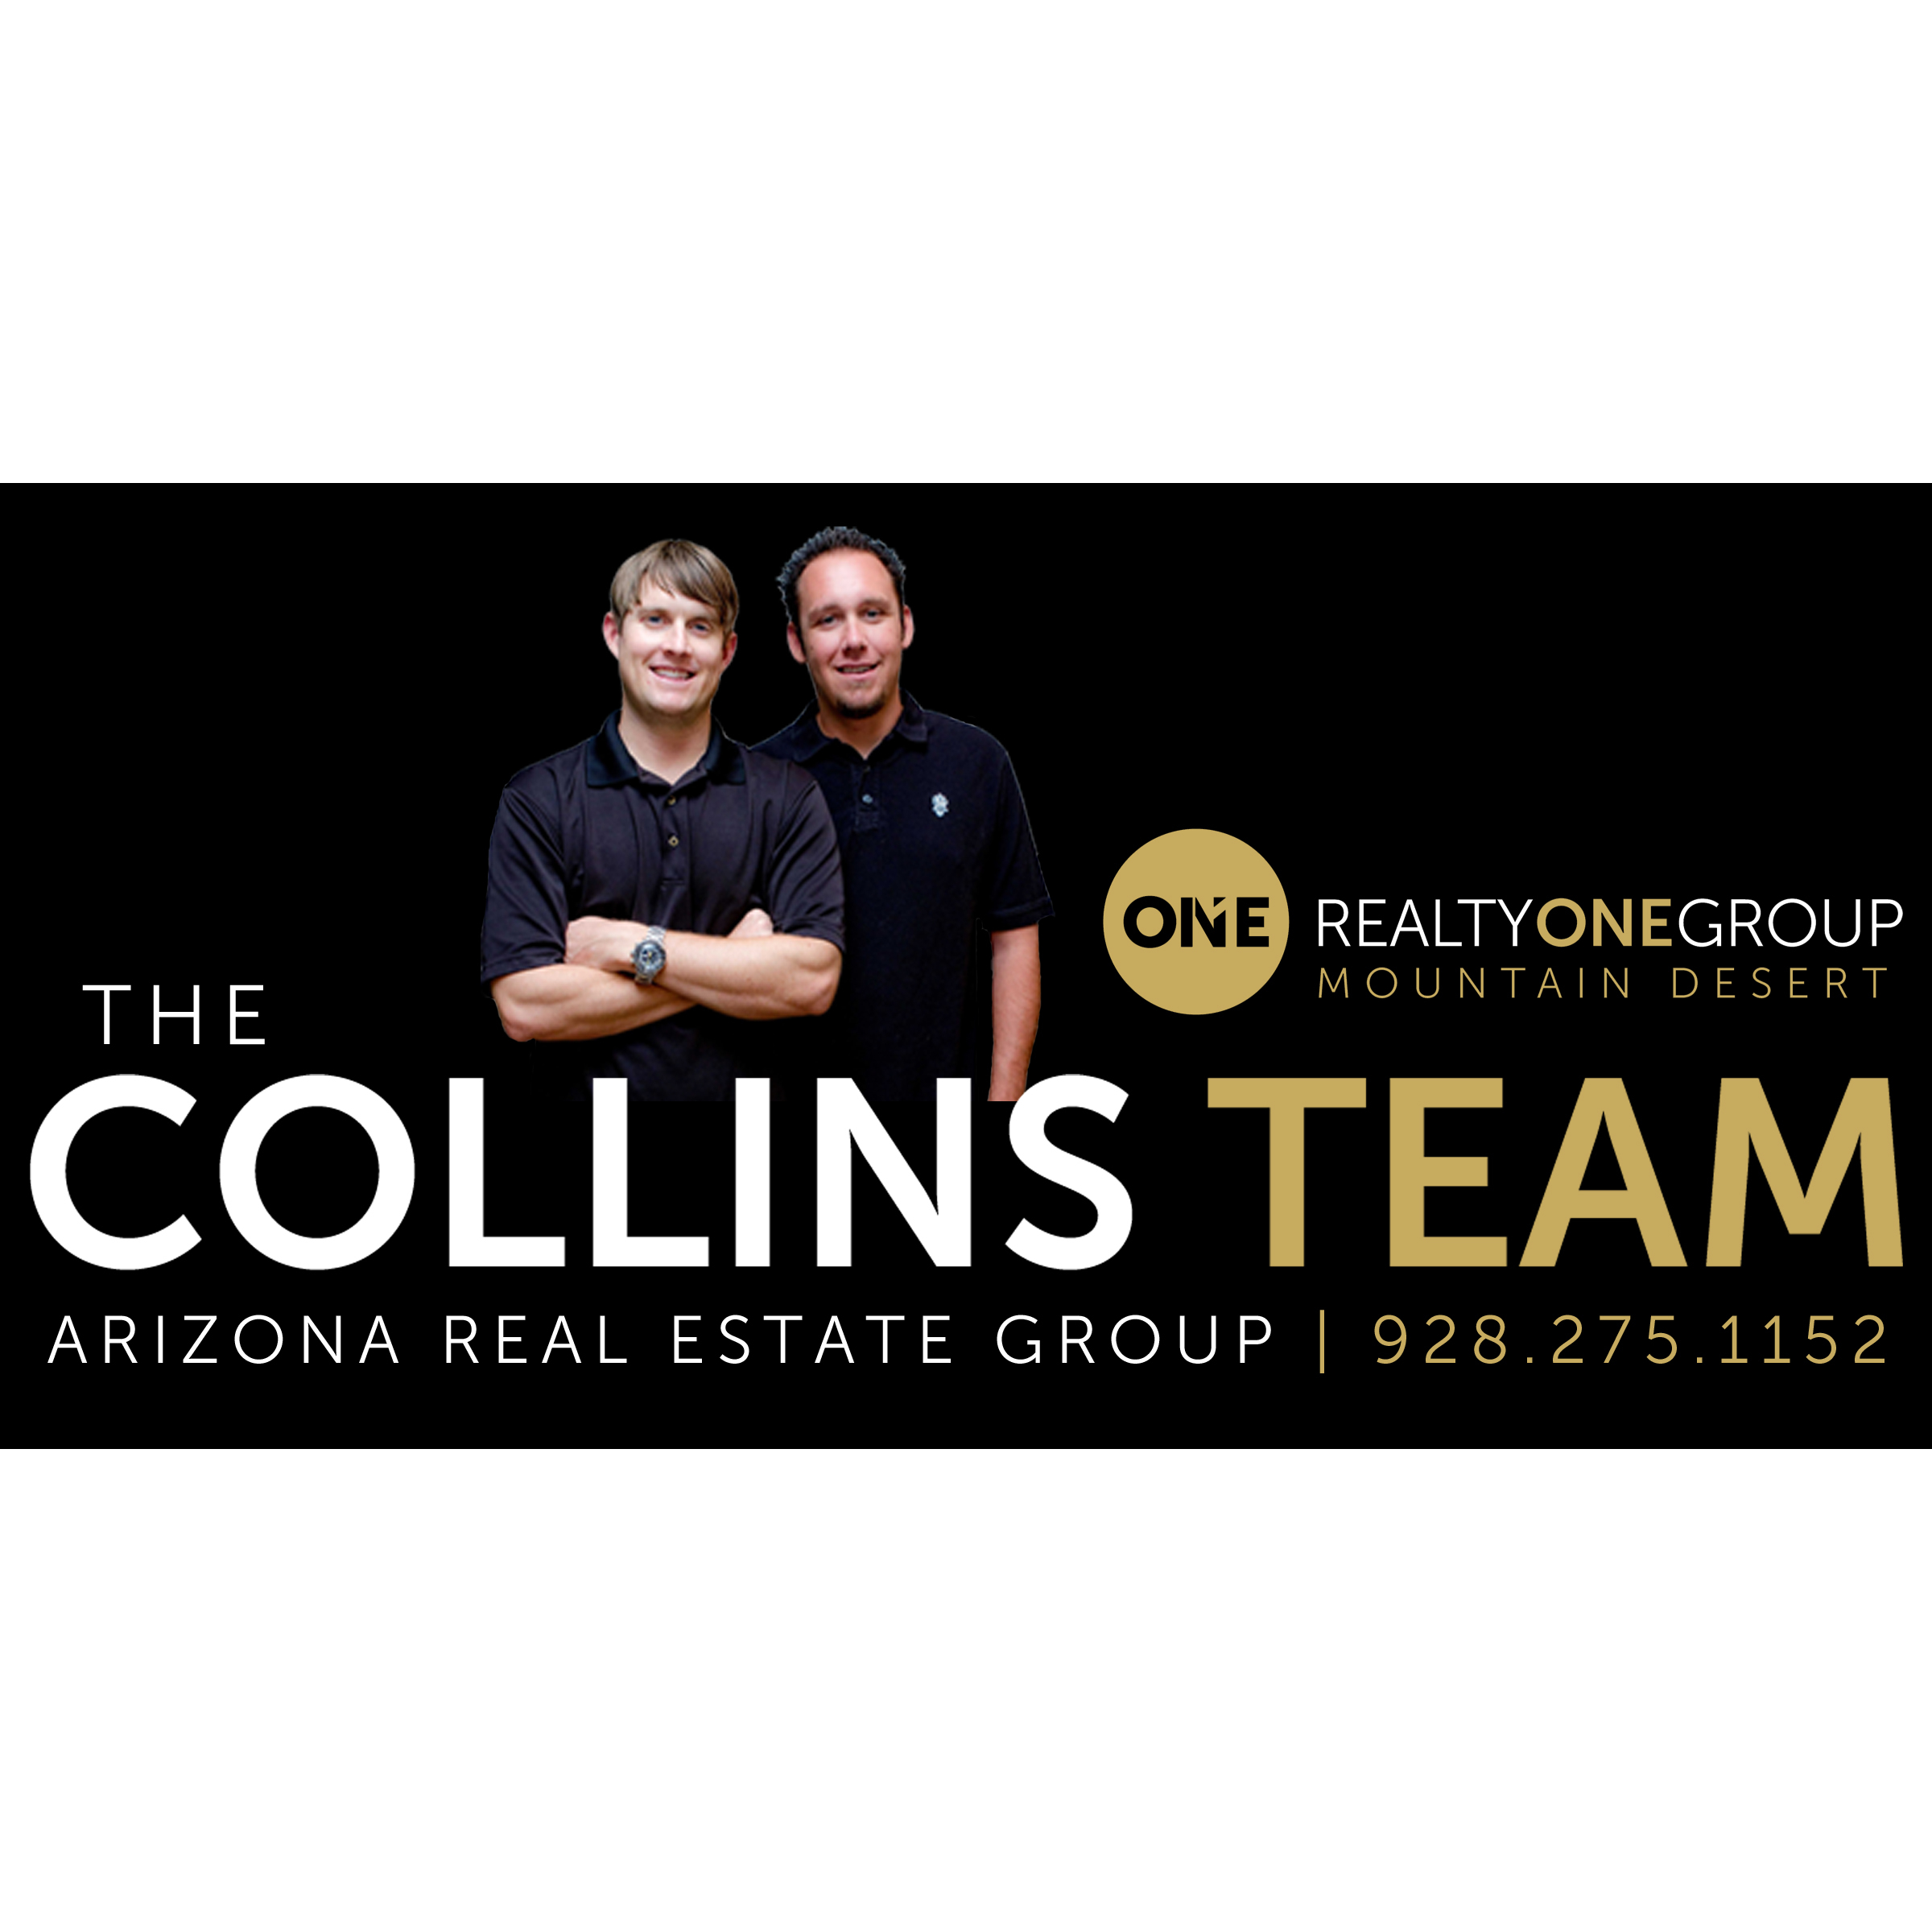 The COLLINS TEAM